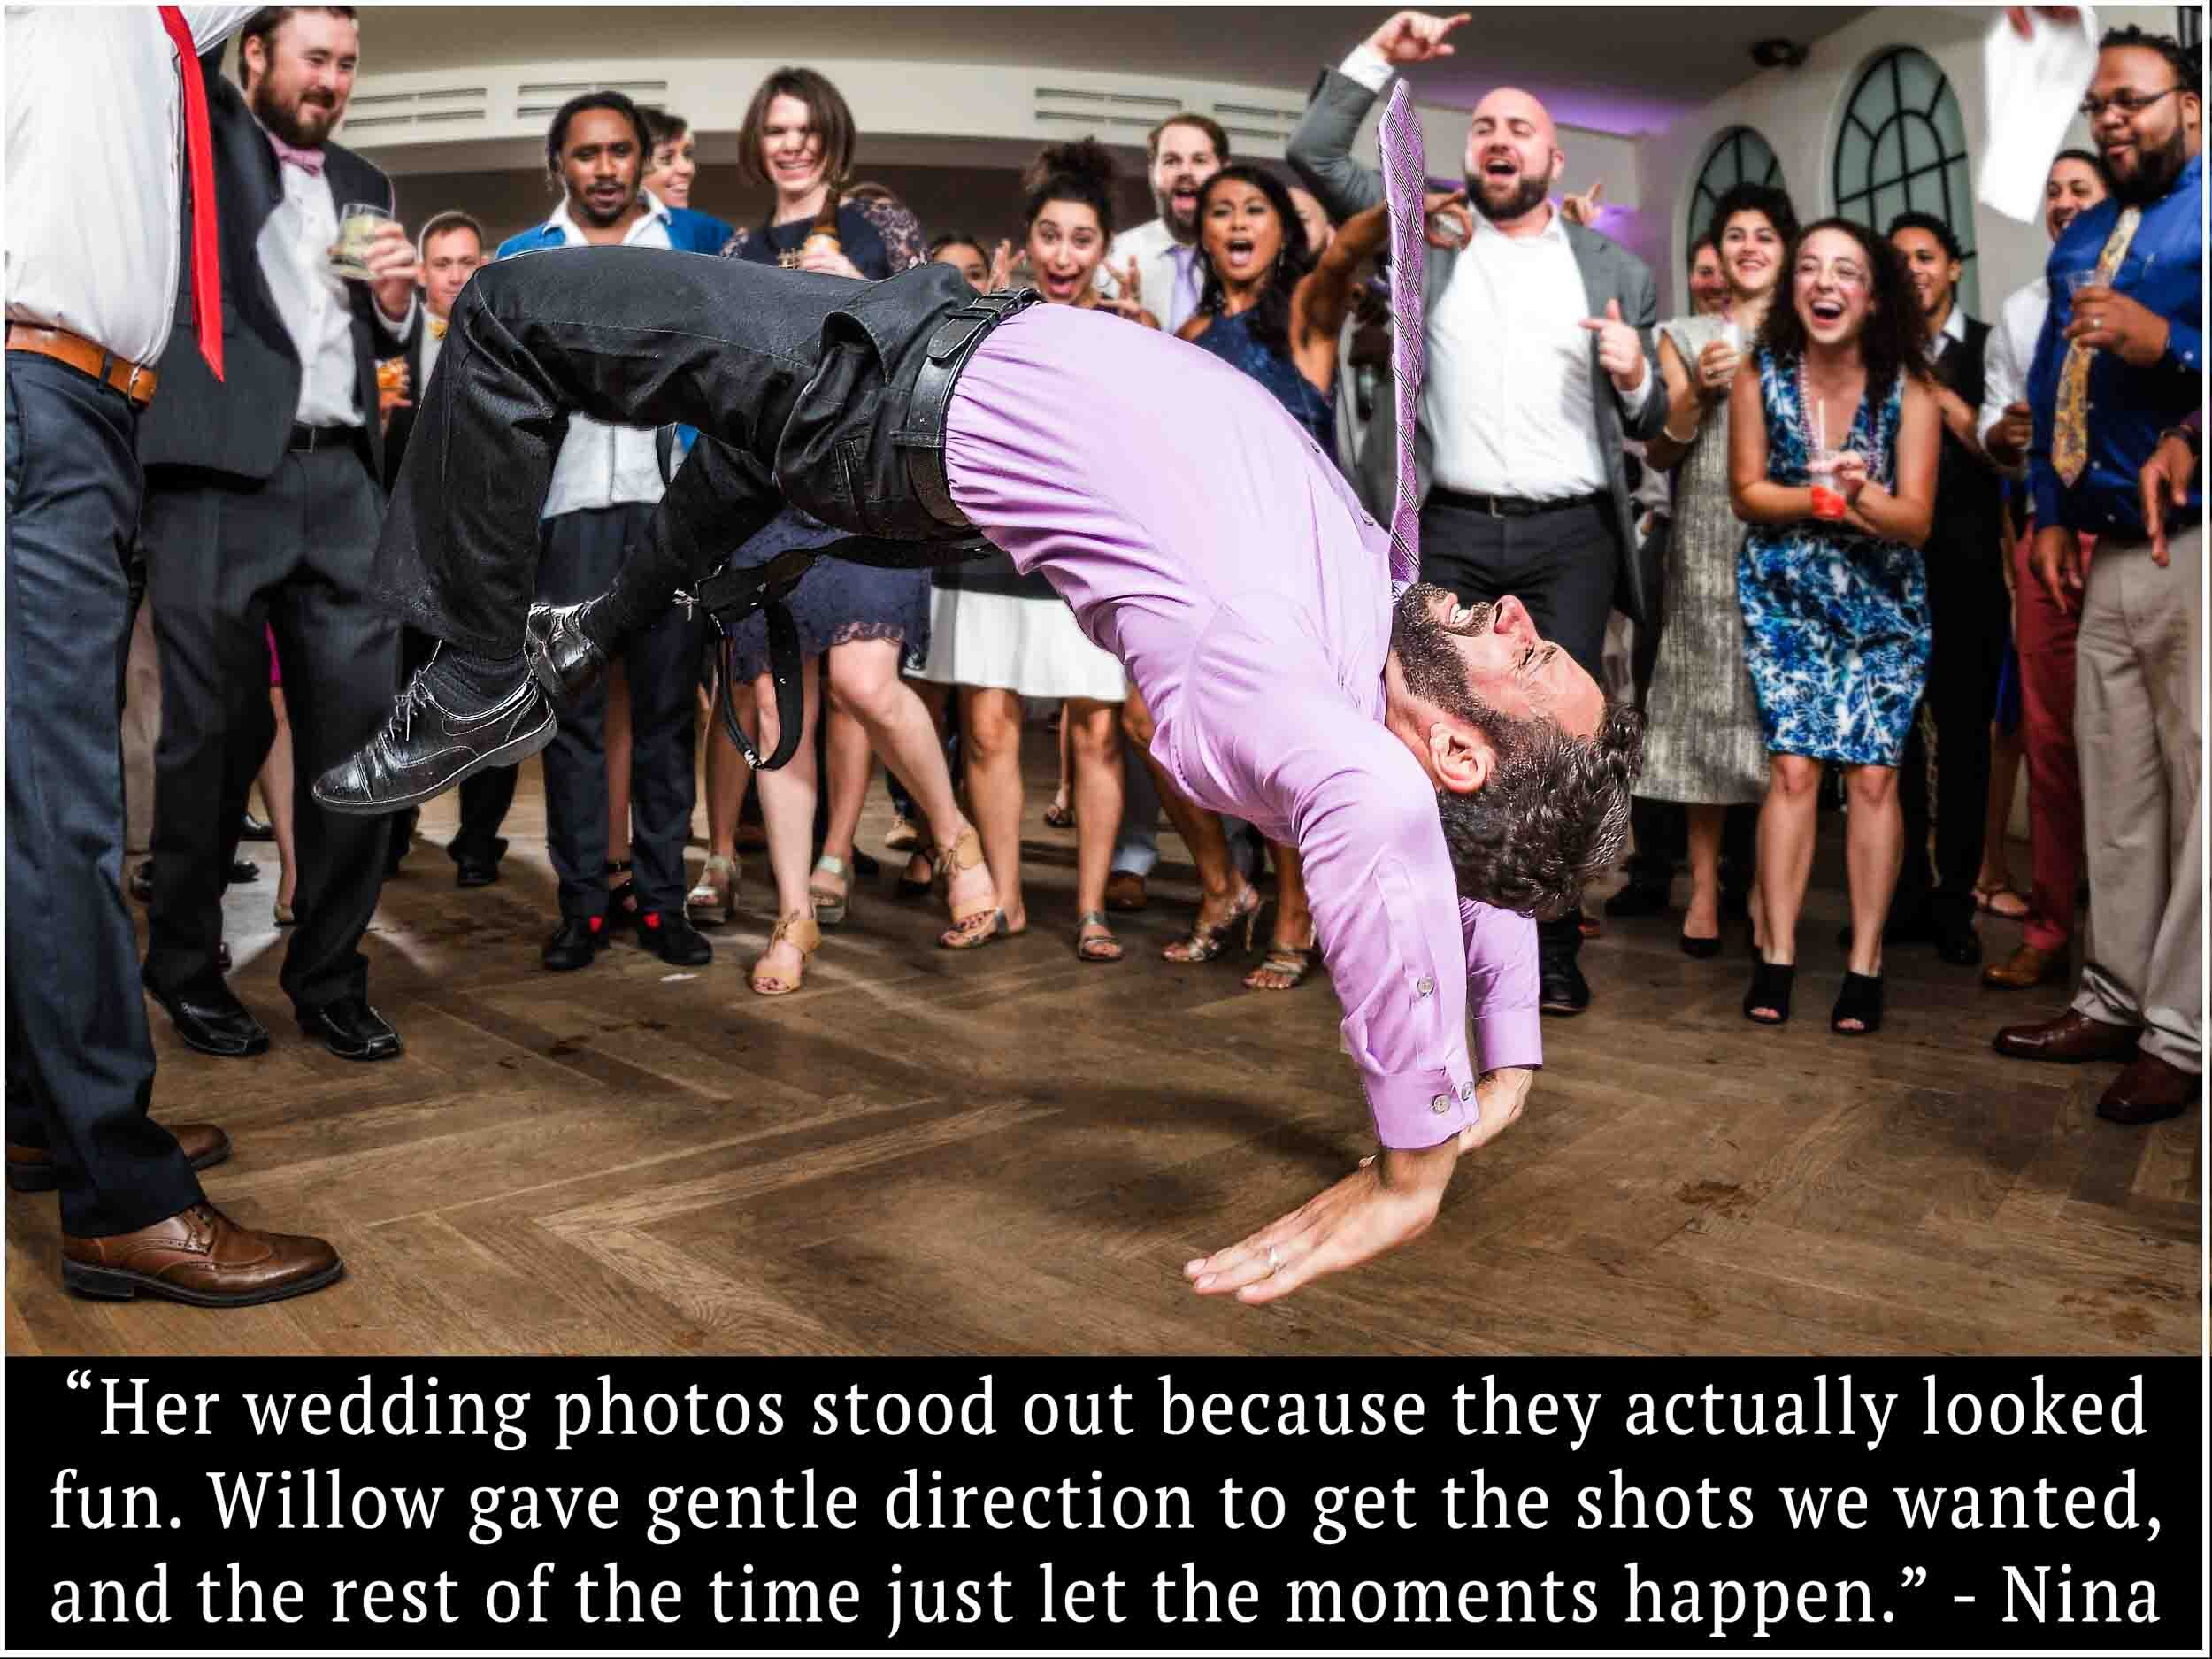 15-Il-Mercato-New-Orleans-Wedding-Reception-Photo-Willows-World-Photo.jpg